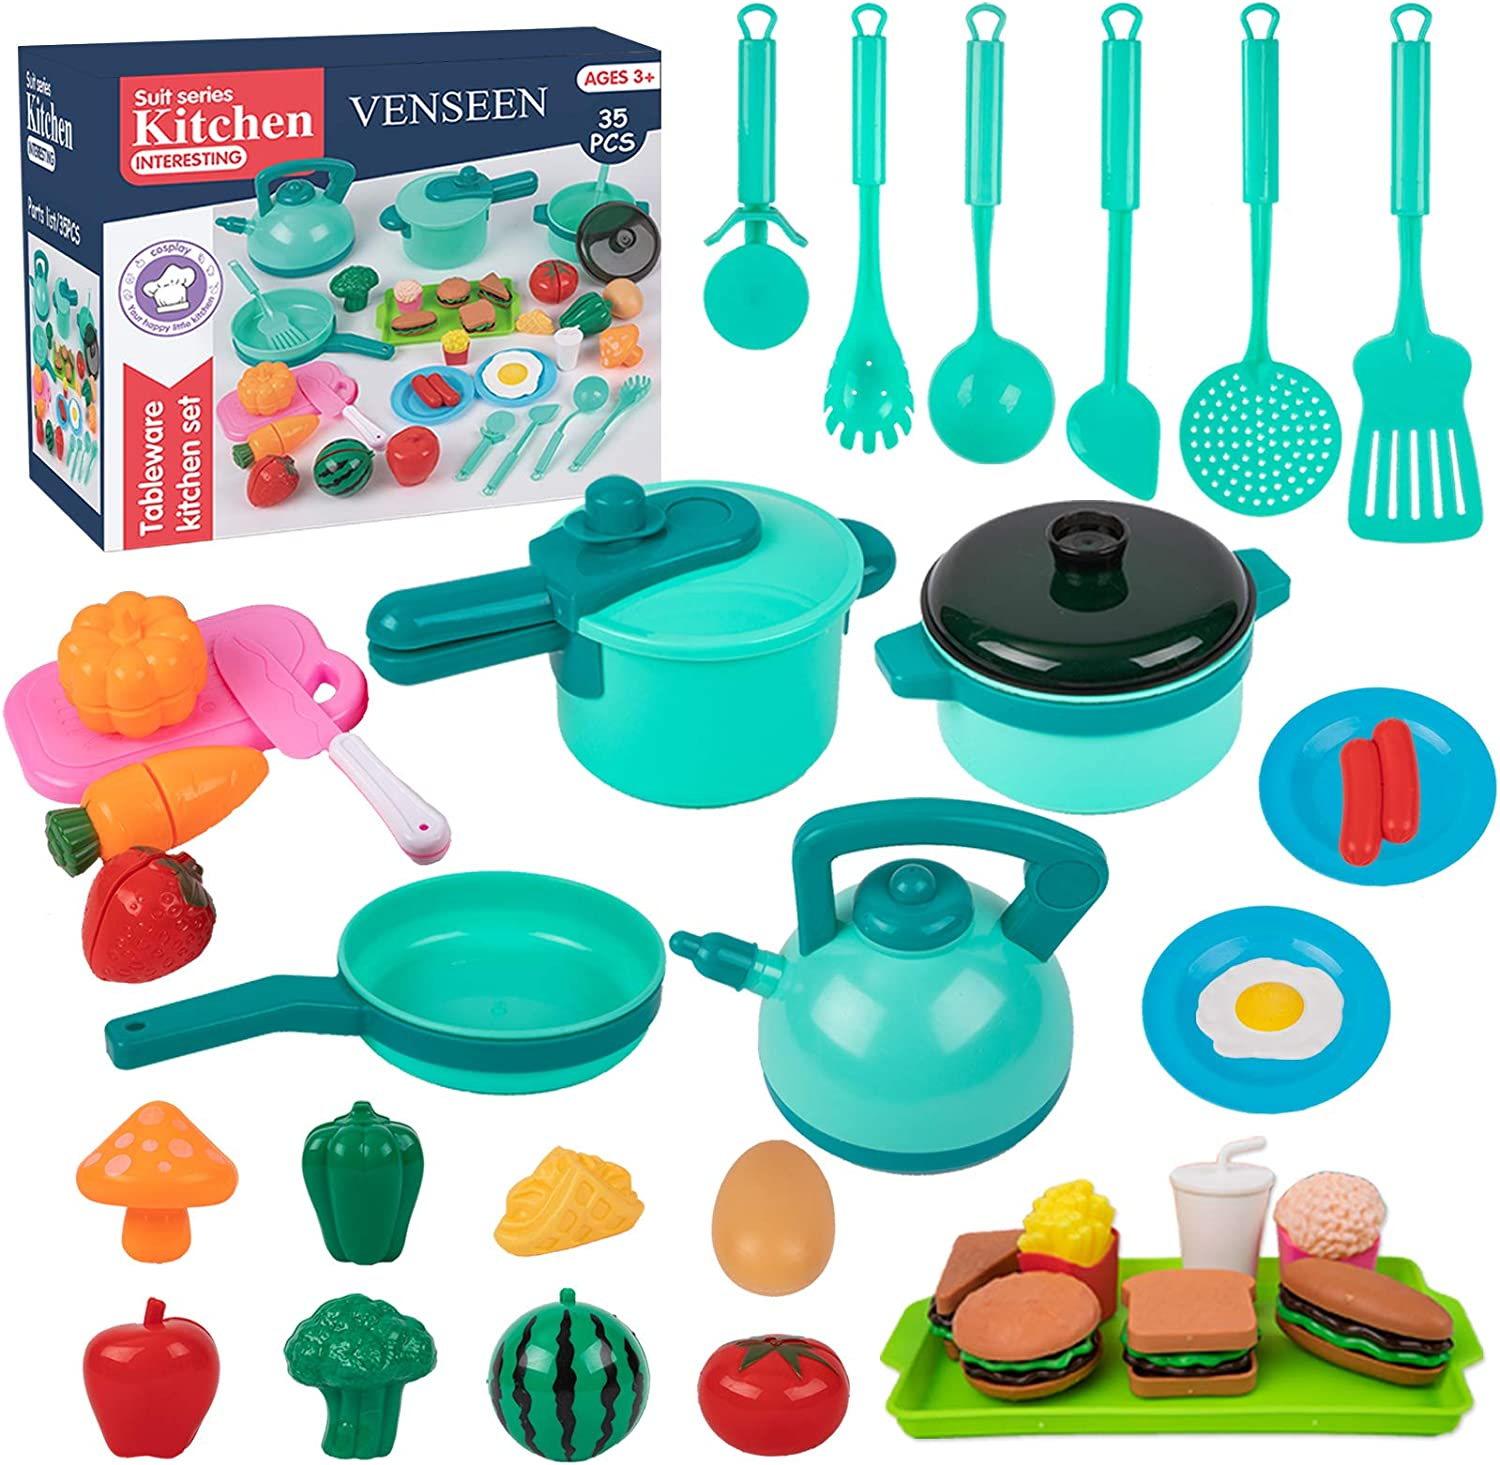 35PCS Kids Kitchen Play Toys, Cookware Playset with Pots and Pans, Play Cooking Set, Cutting Play Food, Cooking Utensils Accessories, Educational Gift for Toddlers Girls Boys Ages 3 4 5 6 Years Old